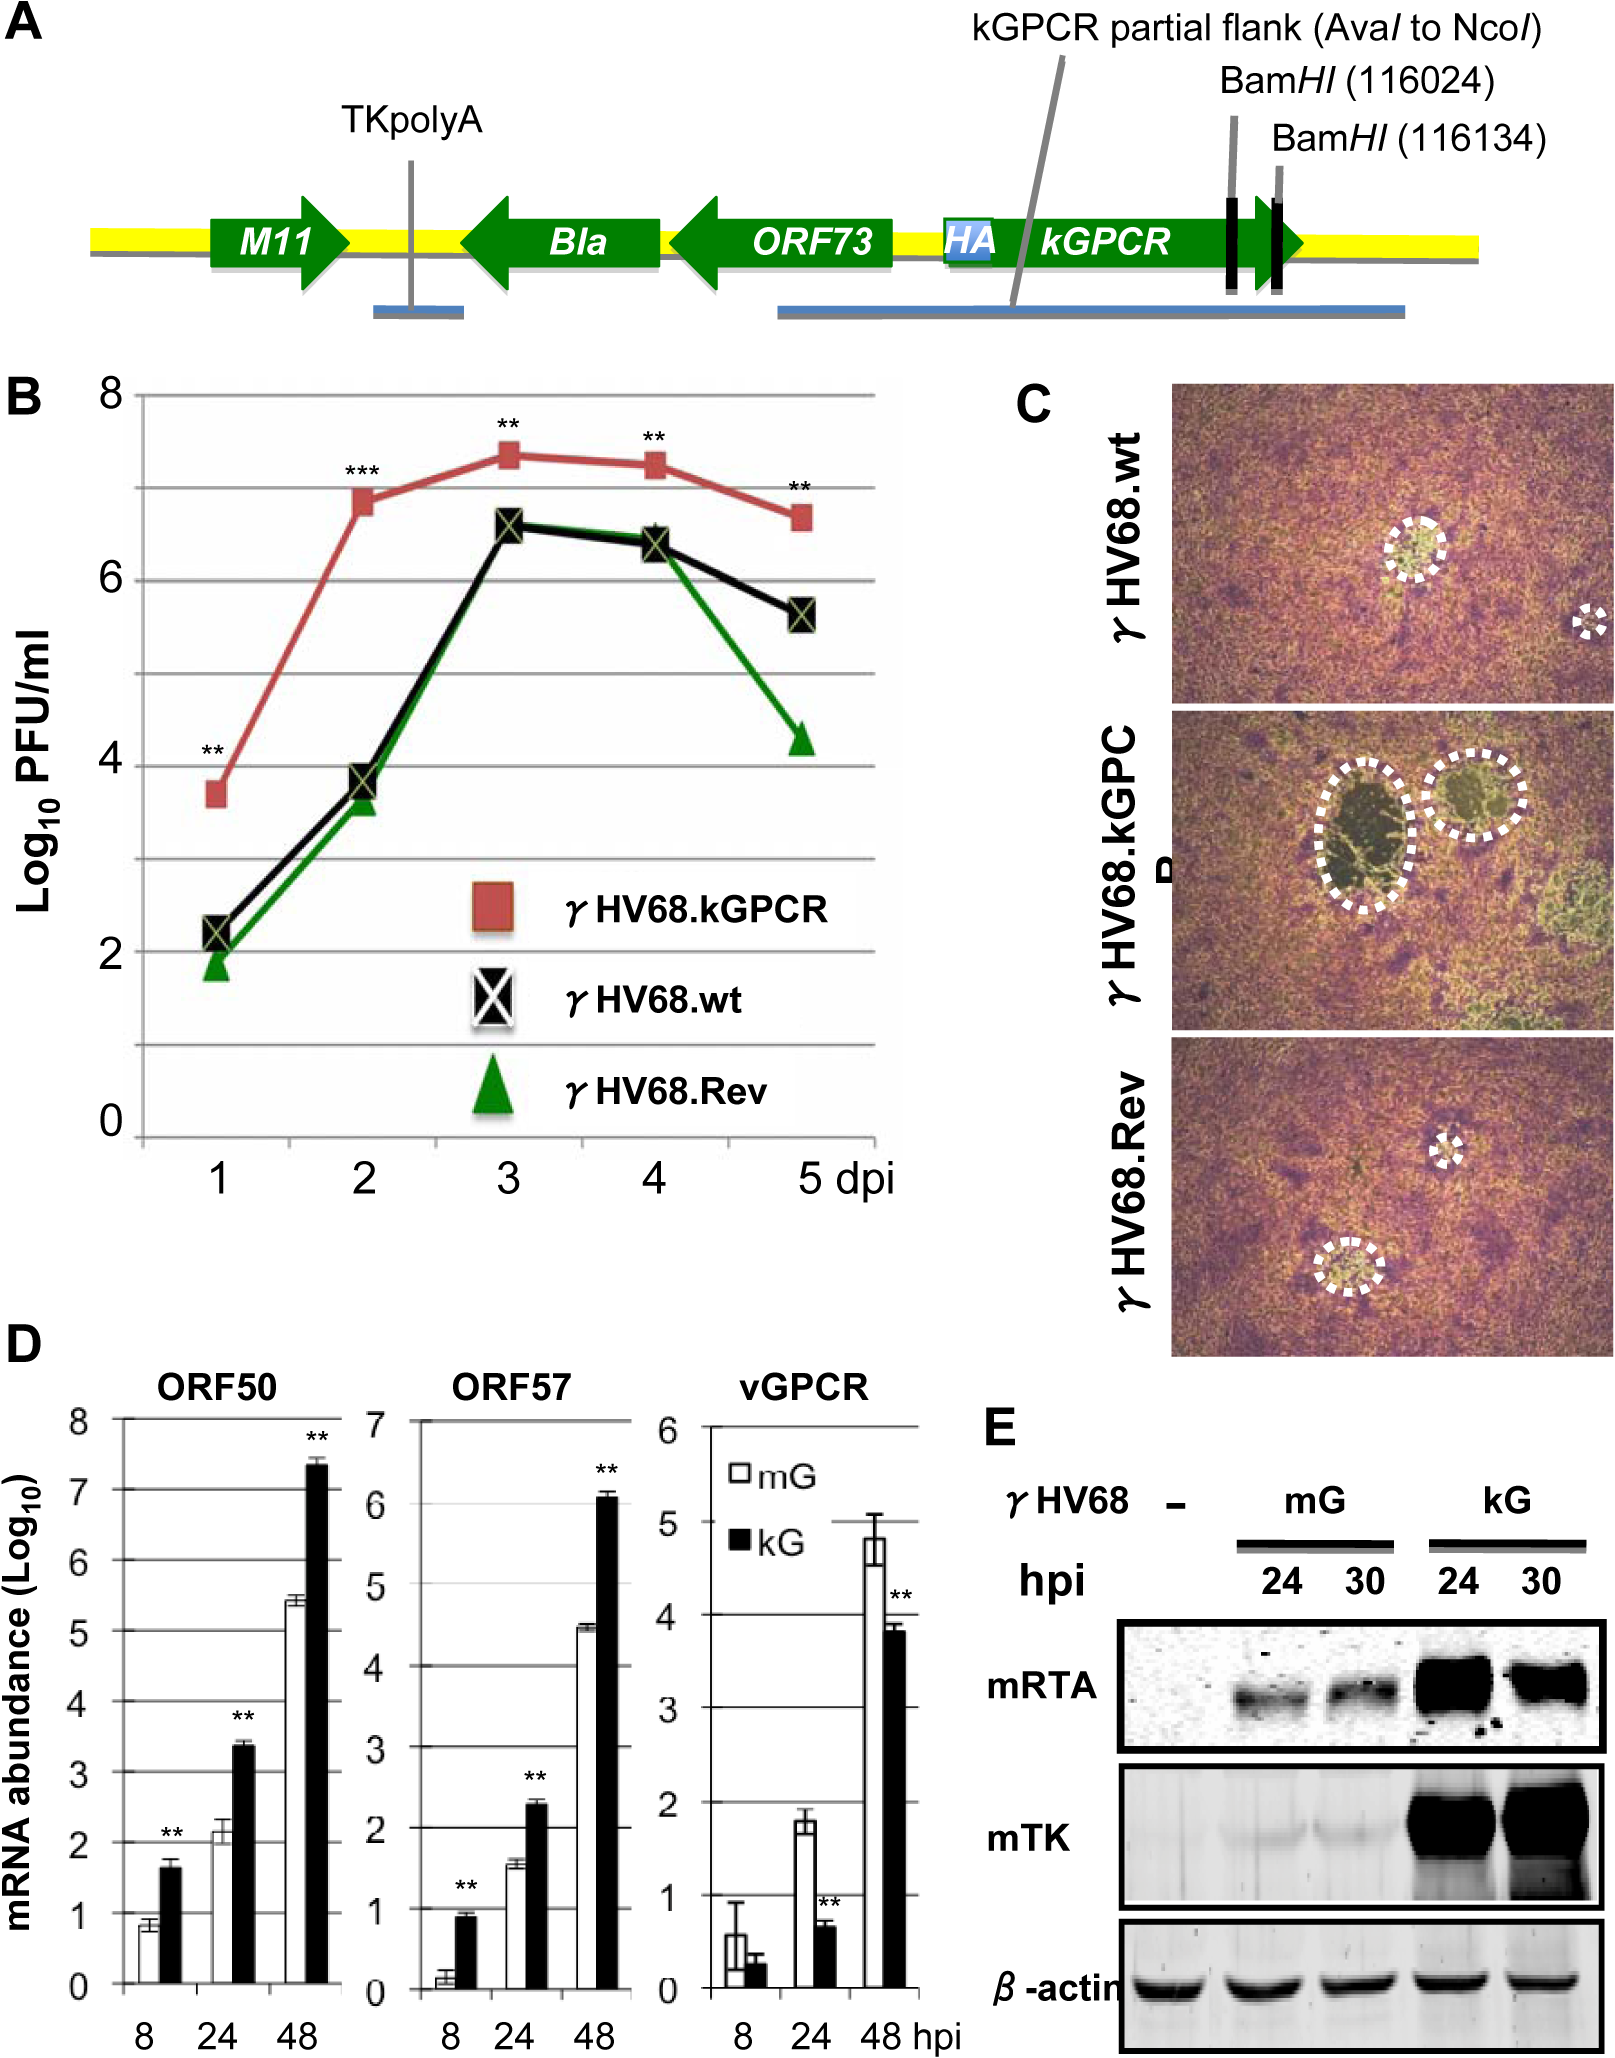 Generation and characterization of a recombinant γHV68 carrying kGPCR.